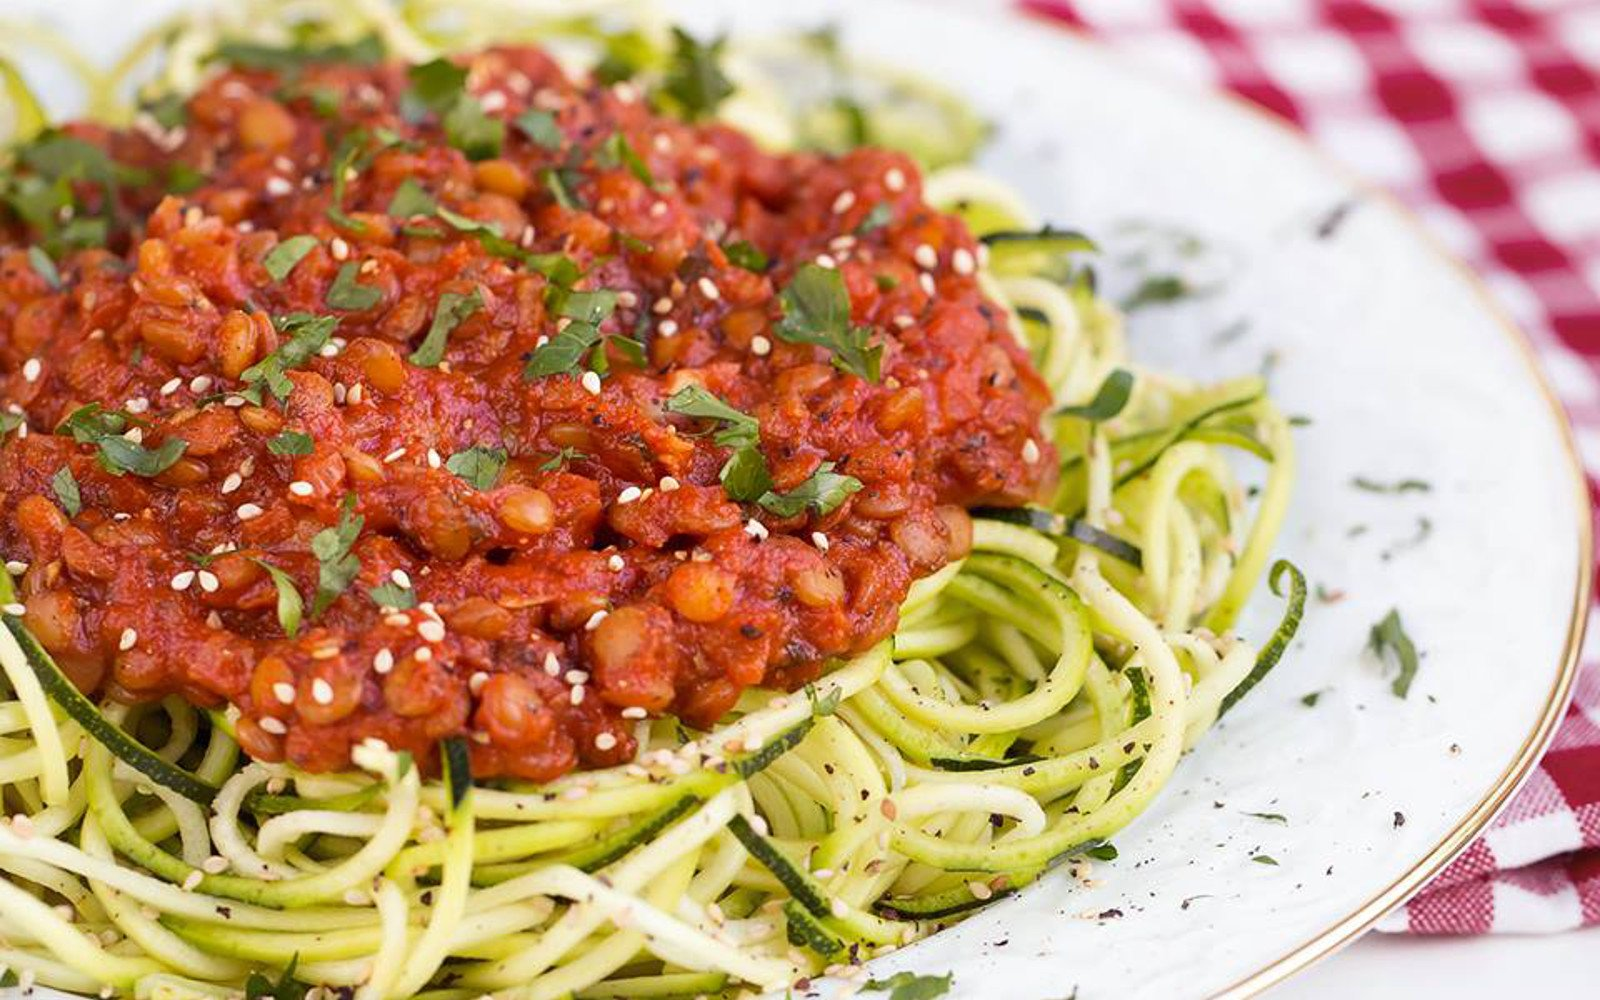 Vegan Zucchini Pasta With Spicy Tomato and Lentil Sauce